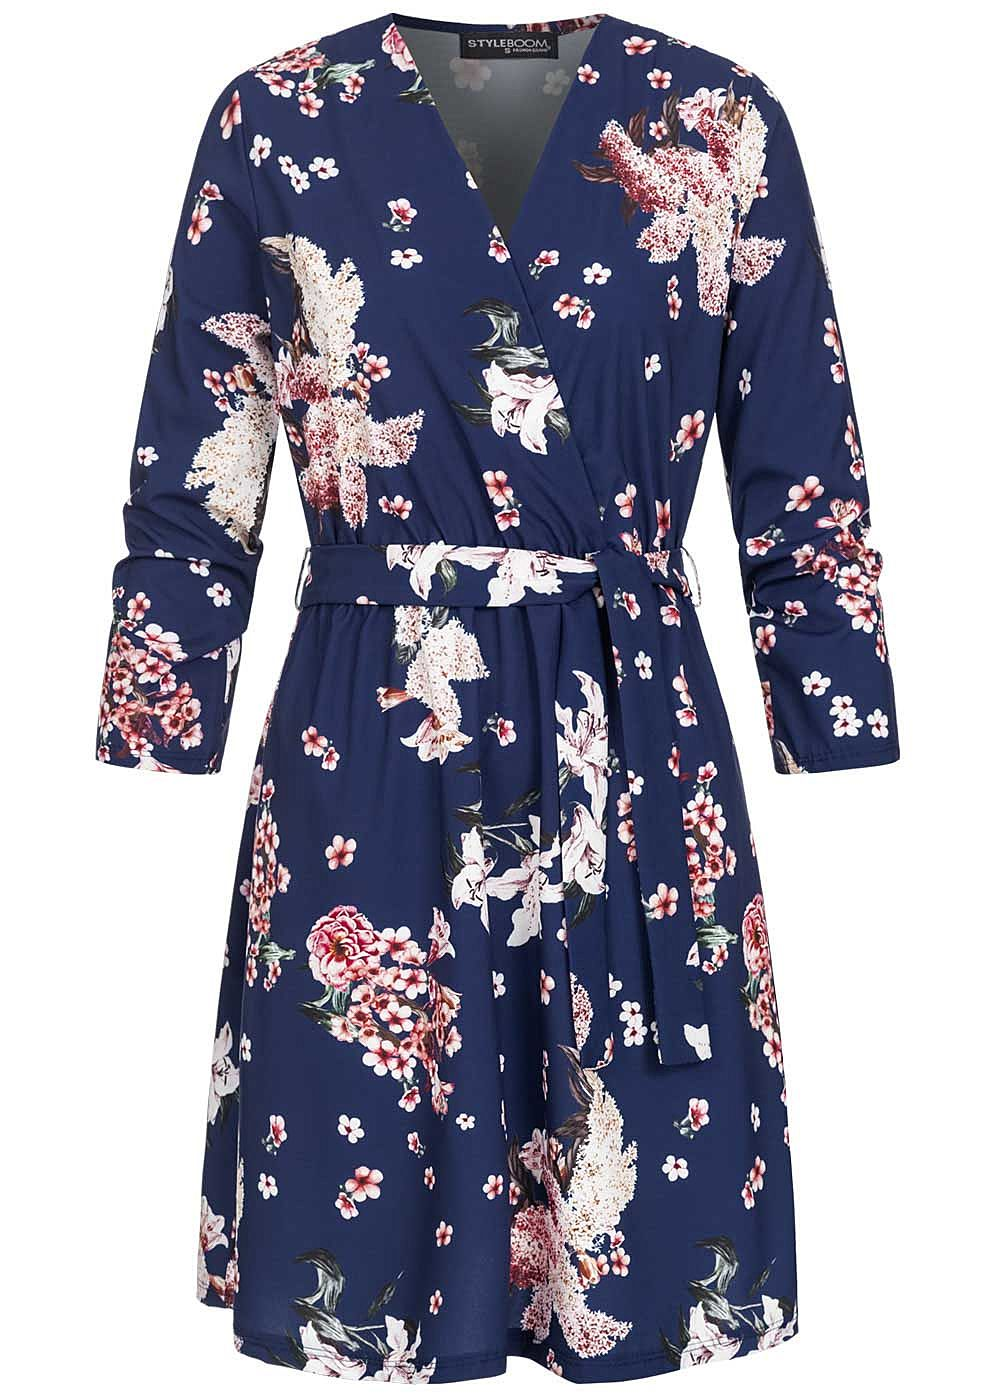 Styleboom Fashion Damen V-Neck Mini Kleid Blumen Print inkl